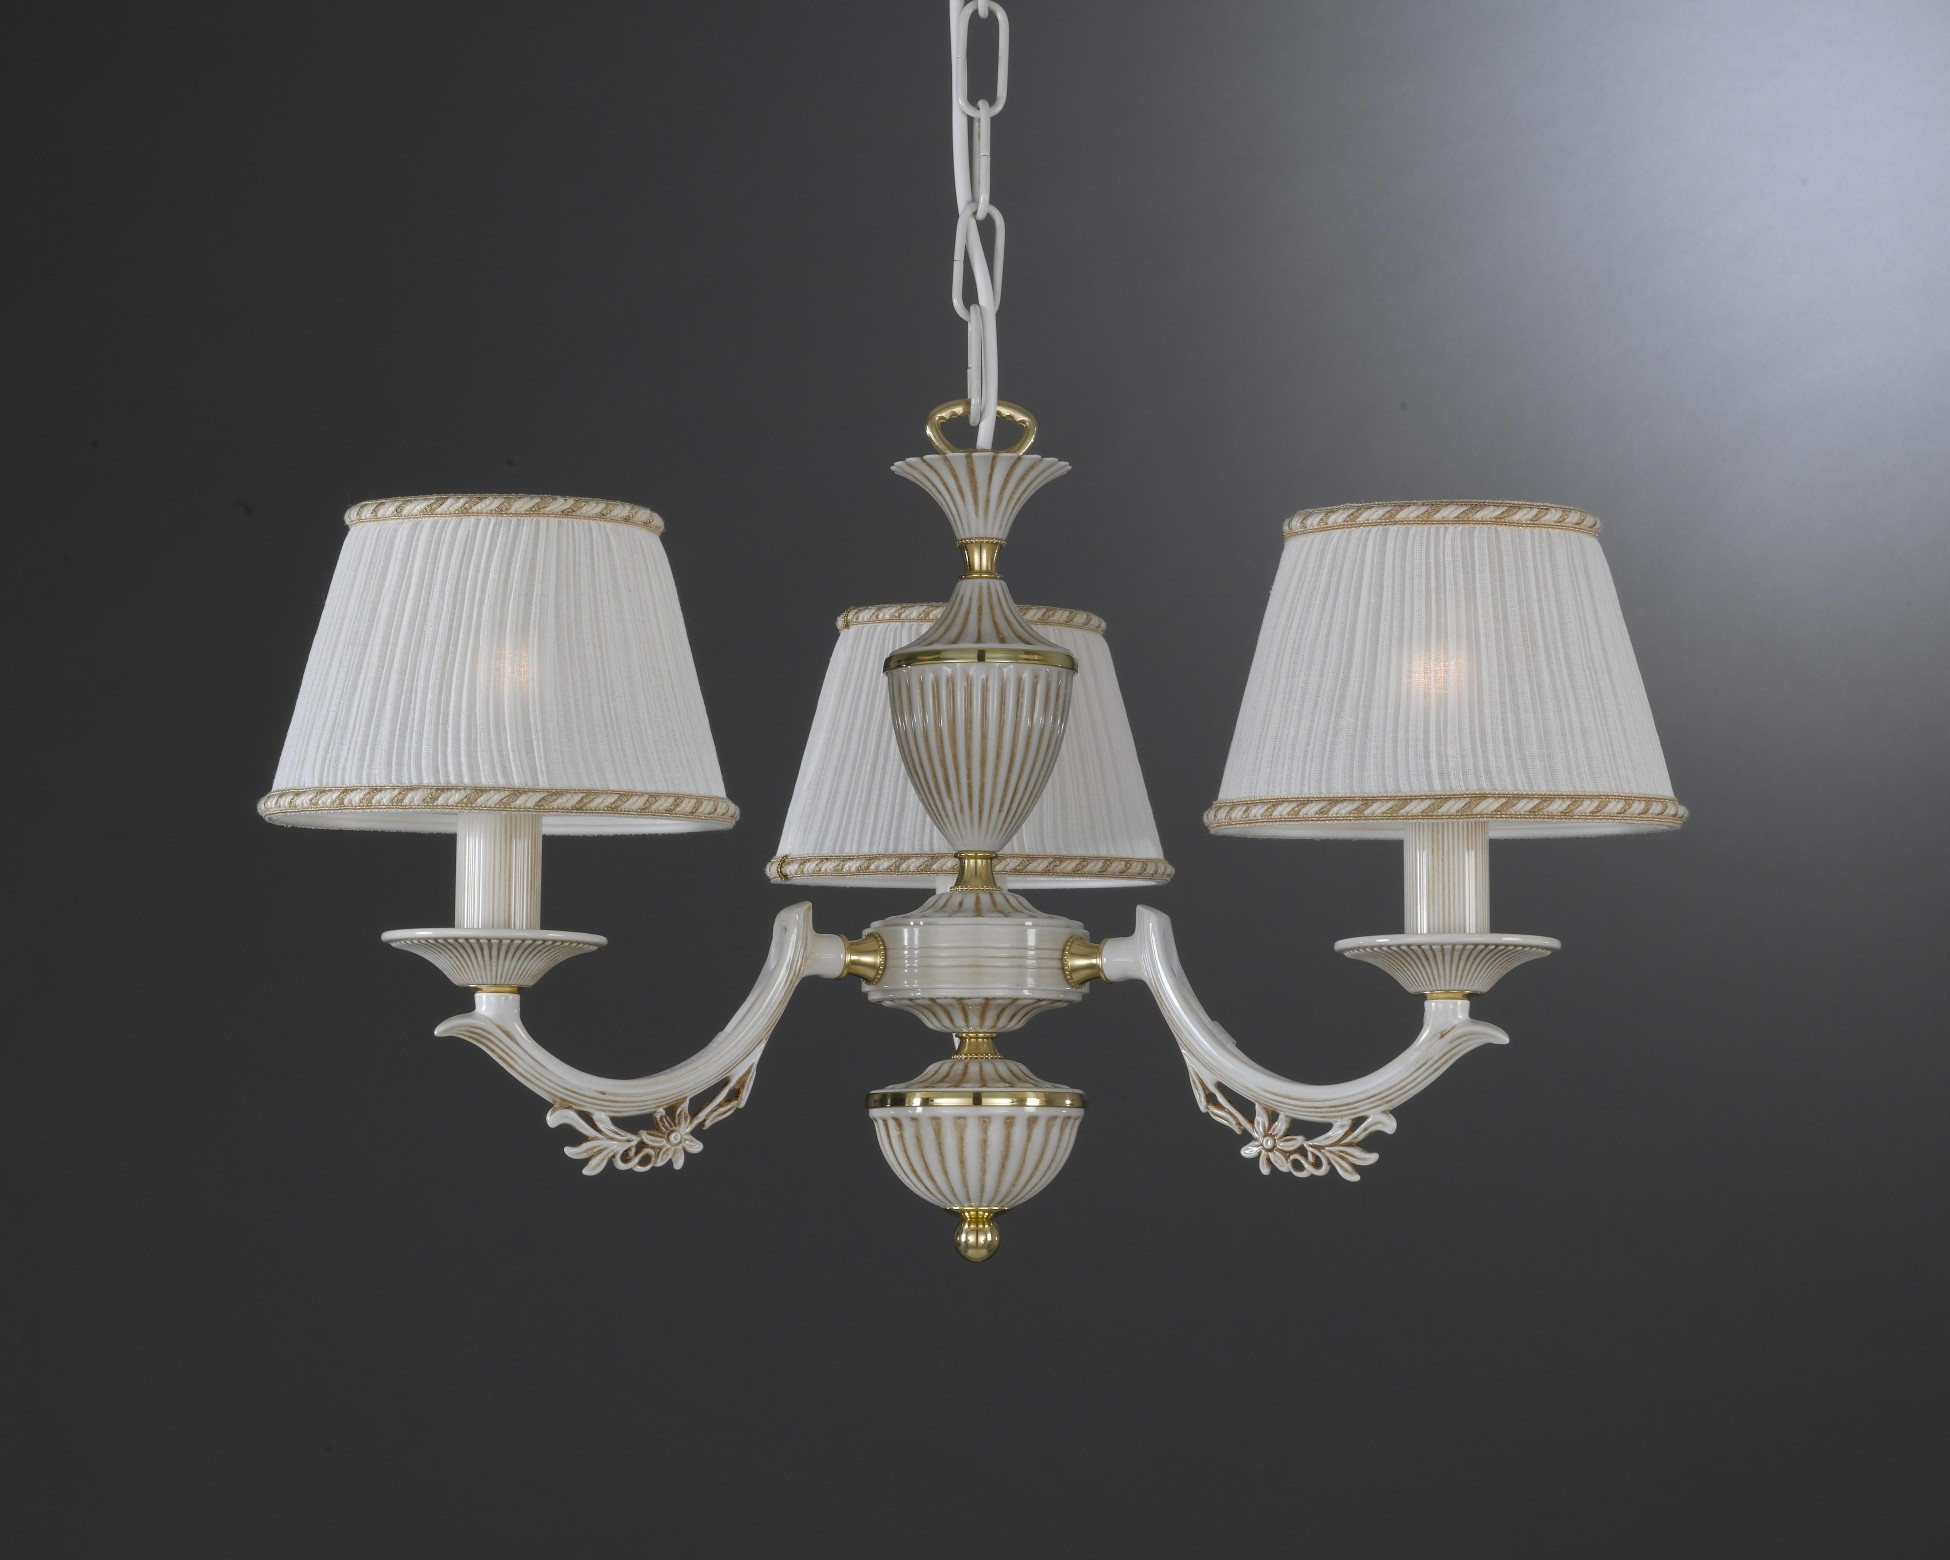 3 Lights Old White Brass Chandelier With Lamp Shades